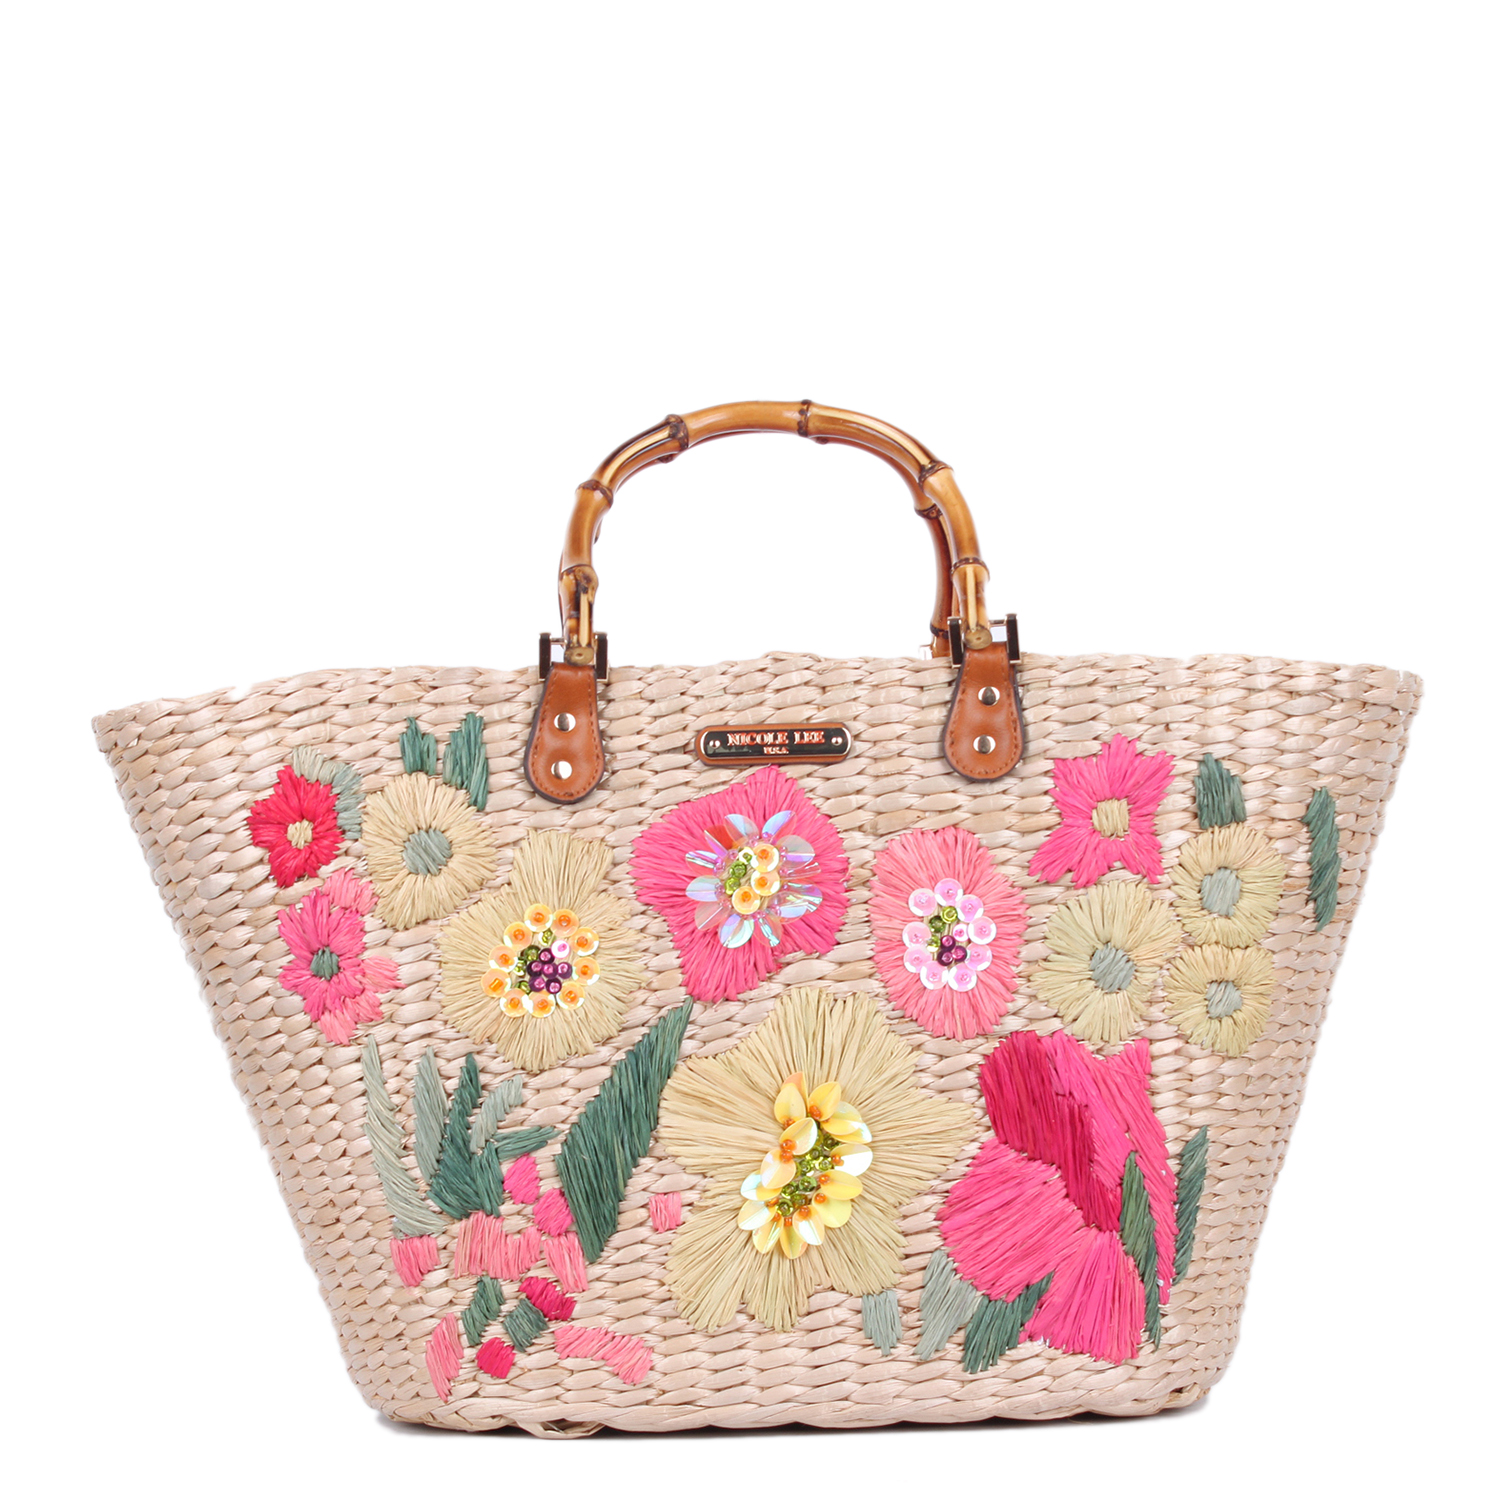 Nicole Lee Flower Emboidered Straw Tote Bag Pink